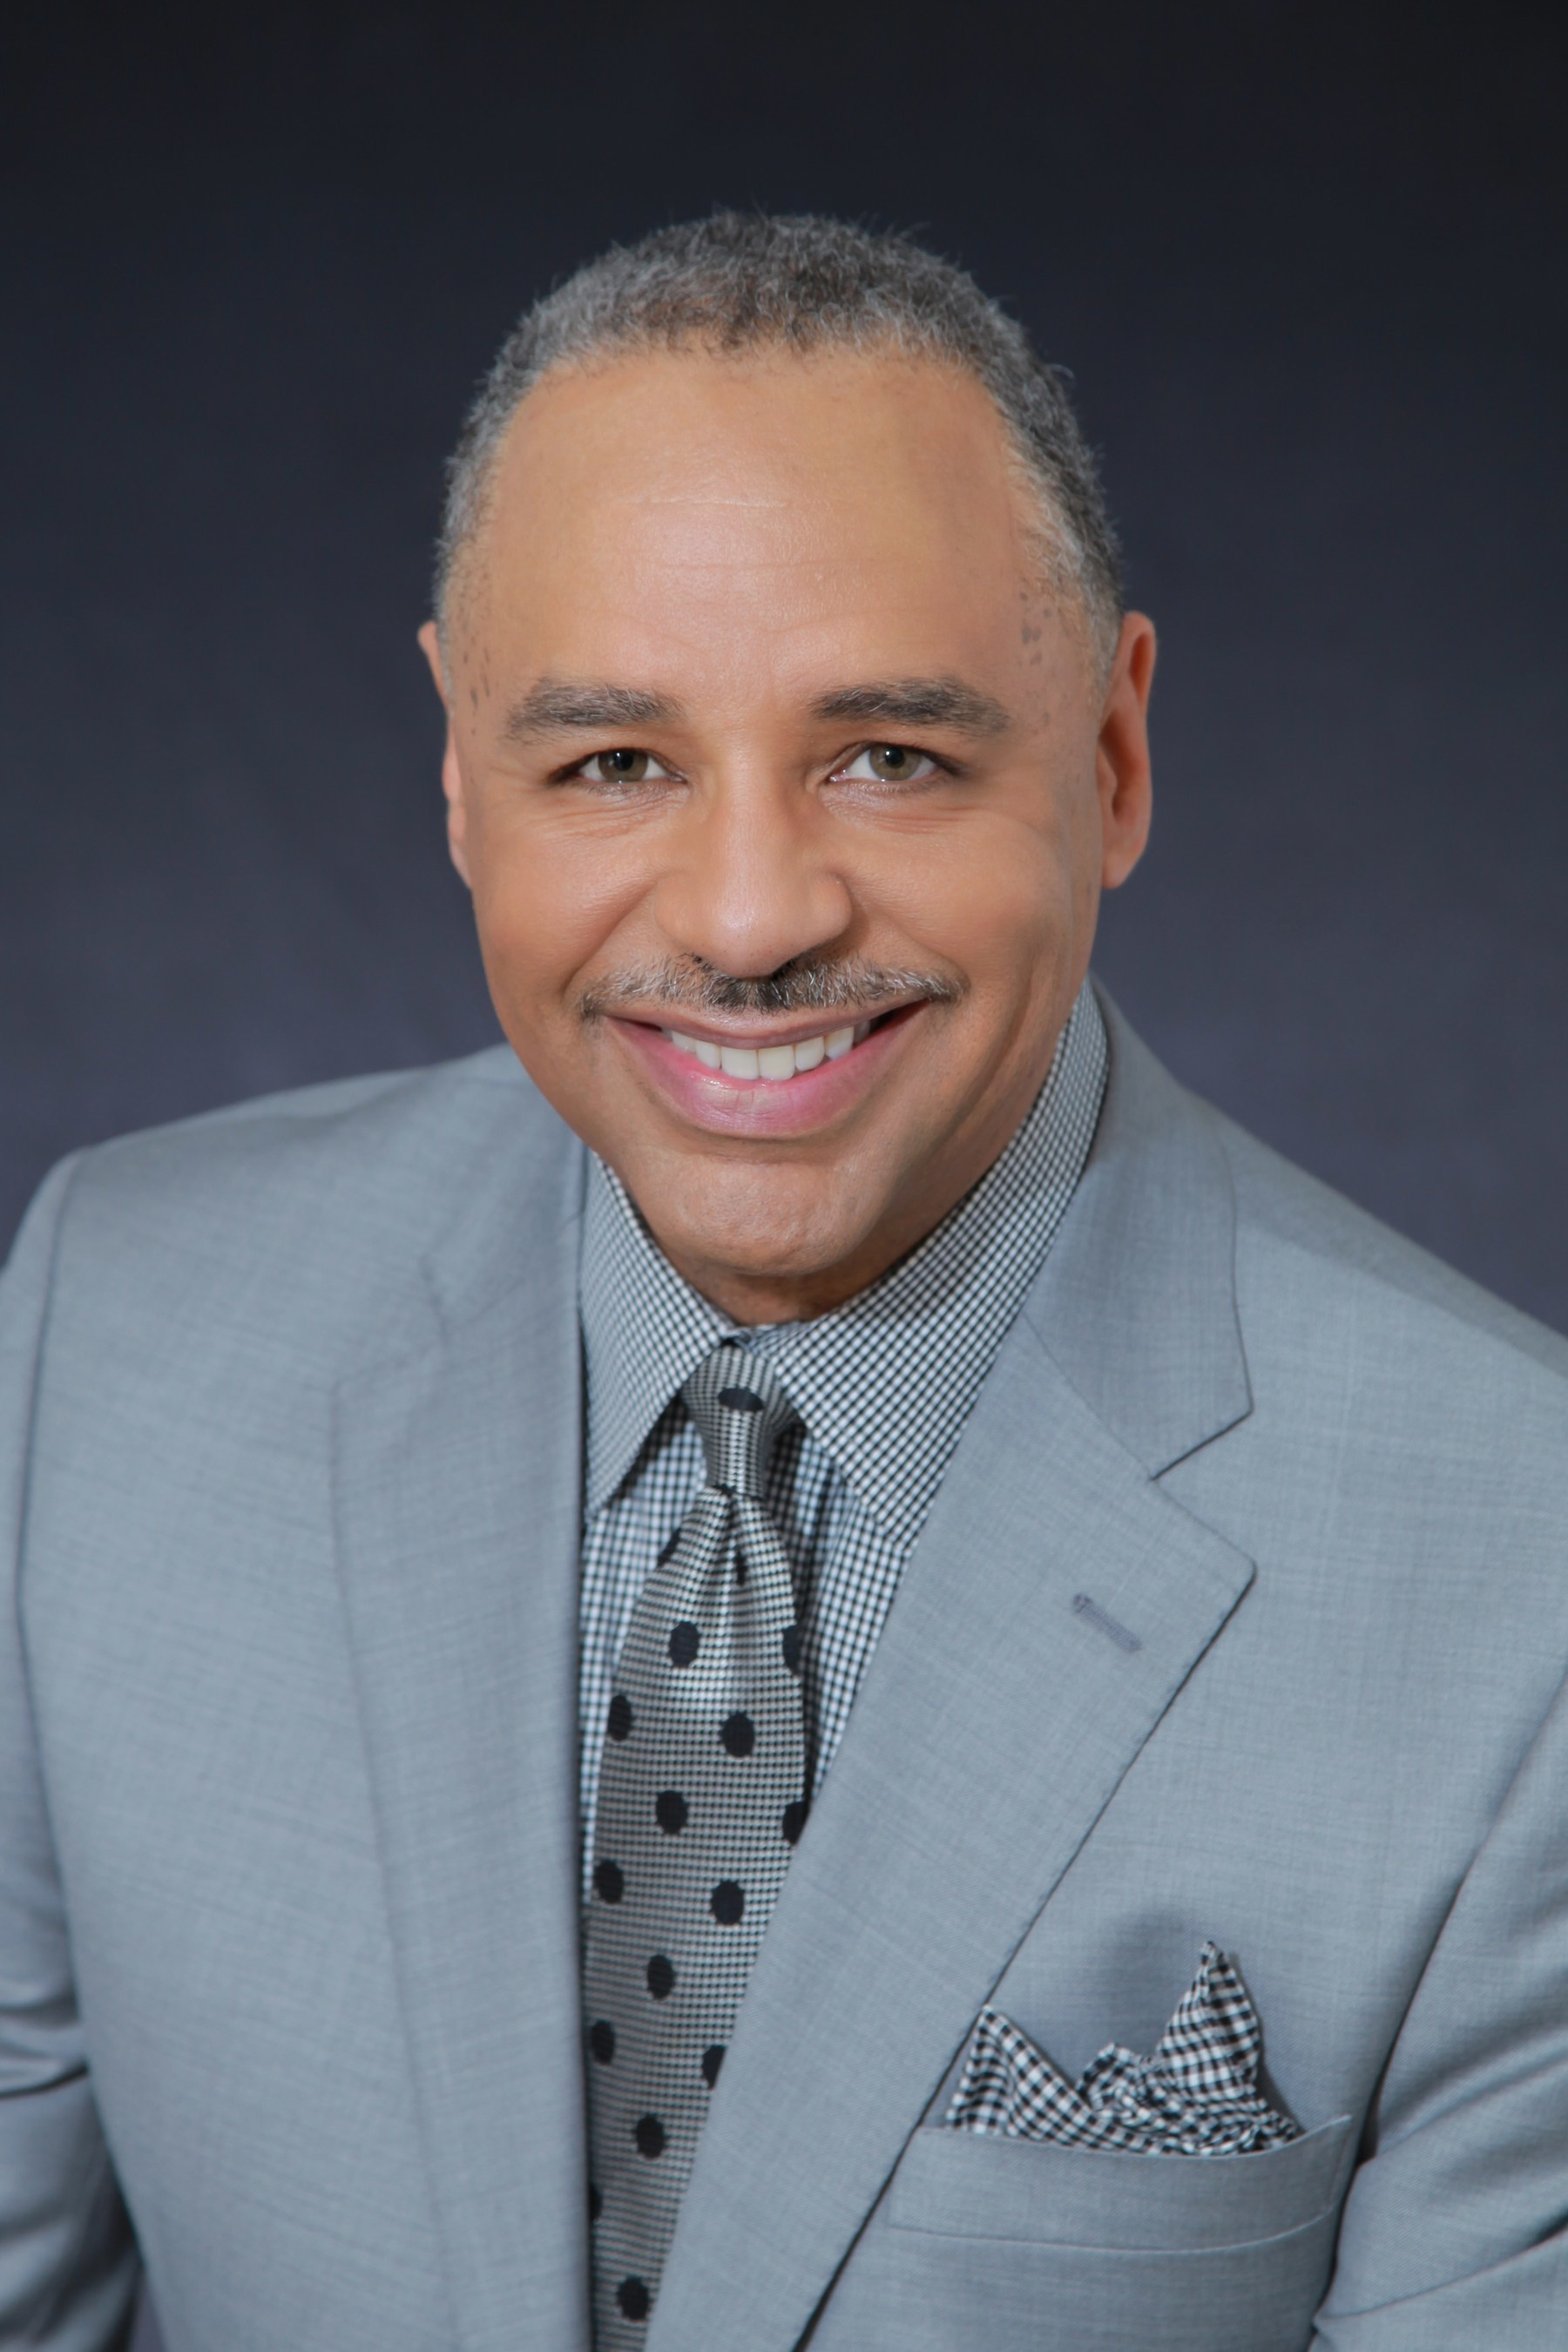 Bounce TV announced today that production has commenced on Ed Gordon, the network's first entry into the primetime news magazine format, and the show's premiere date has been scheduled for Tues. Sept. 13 at 10:00 p.m. (ET).For more information, visit BounceTV.com.